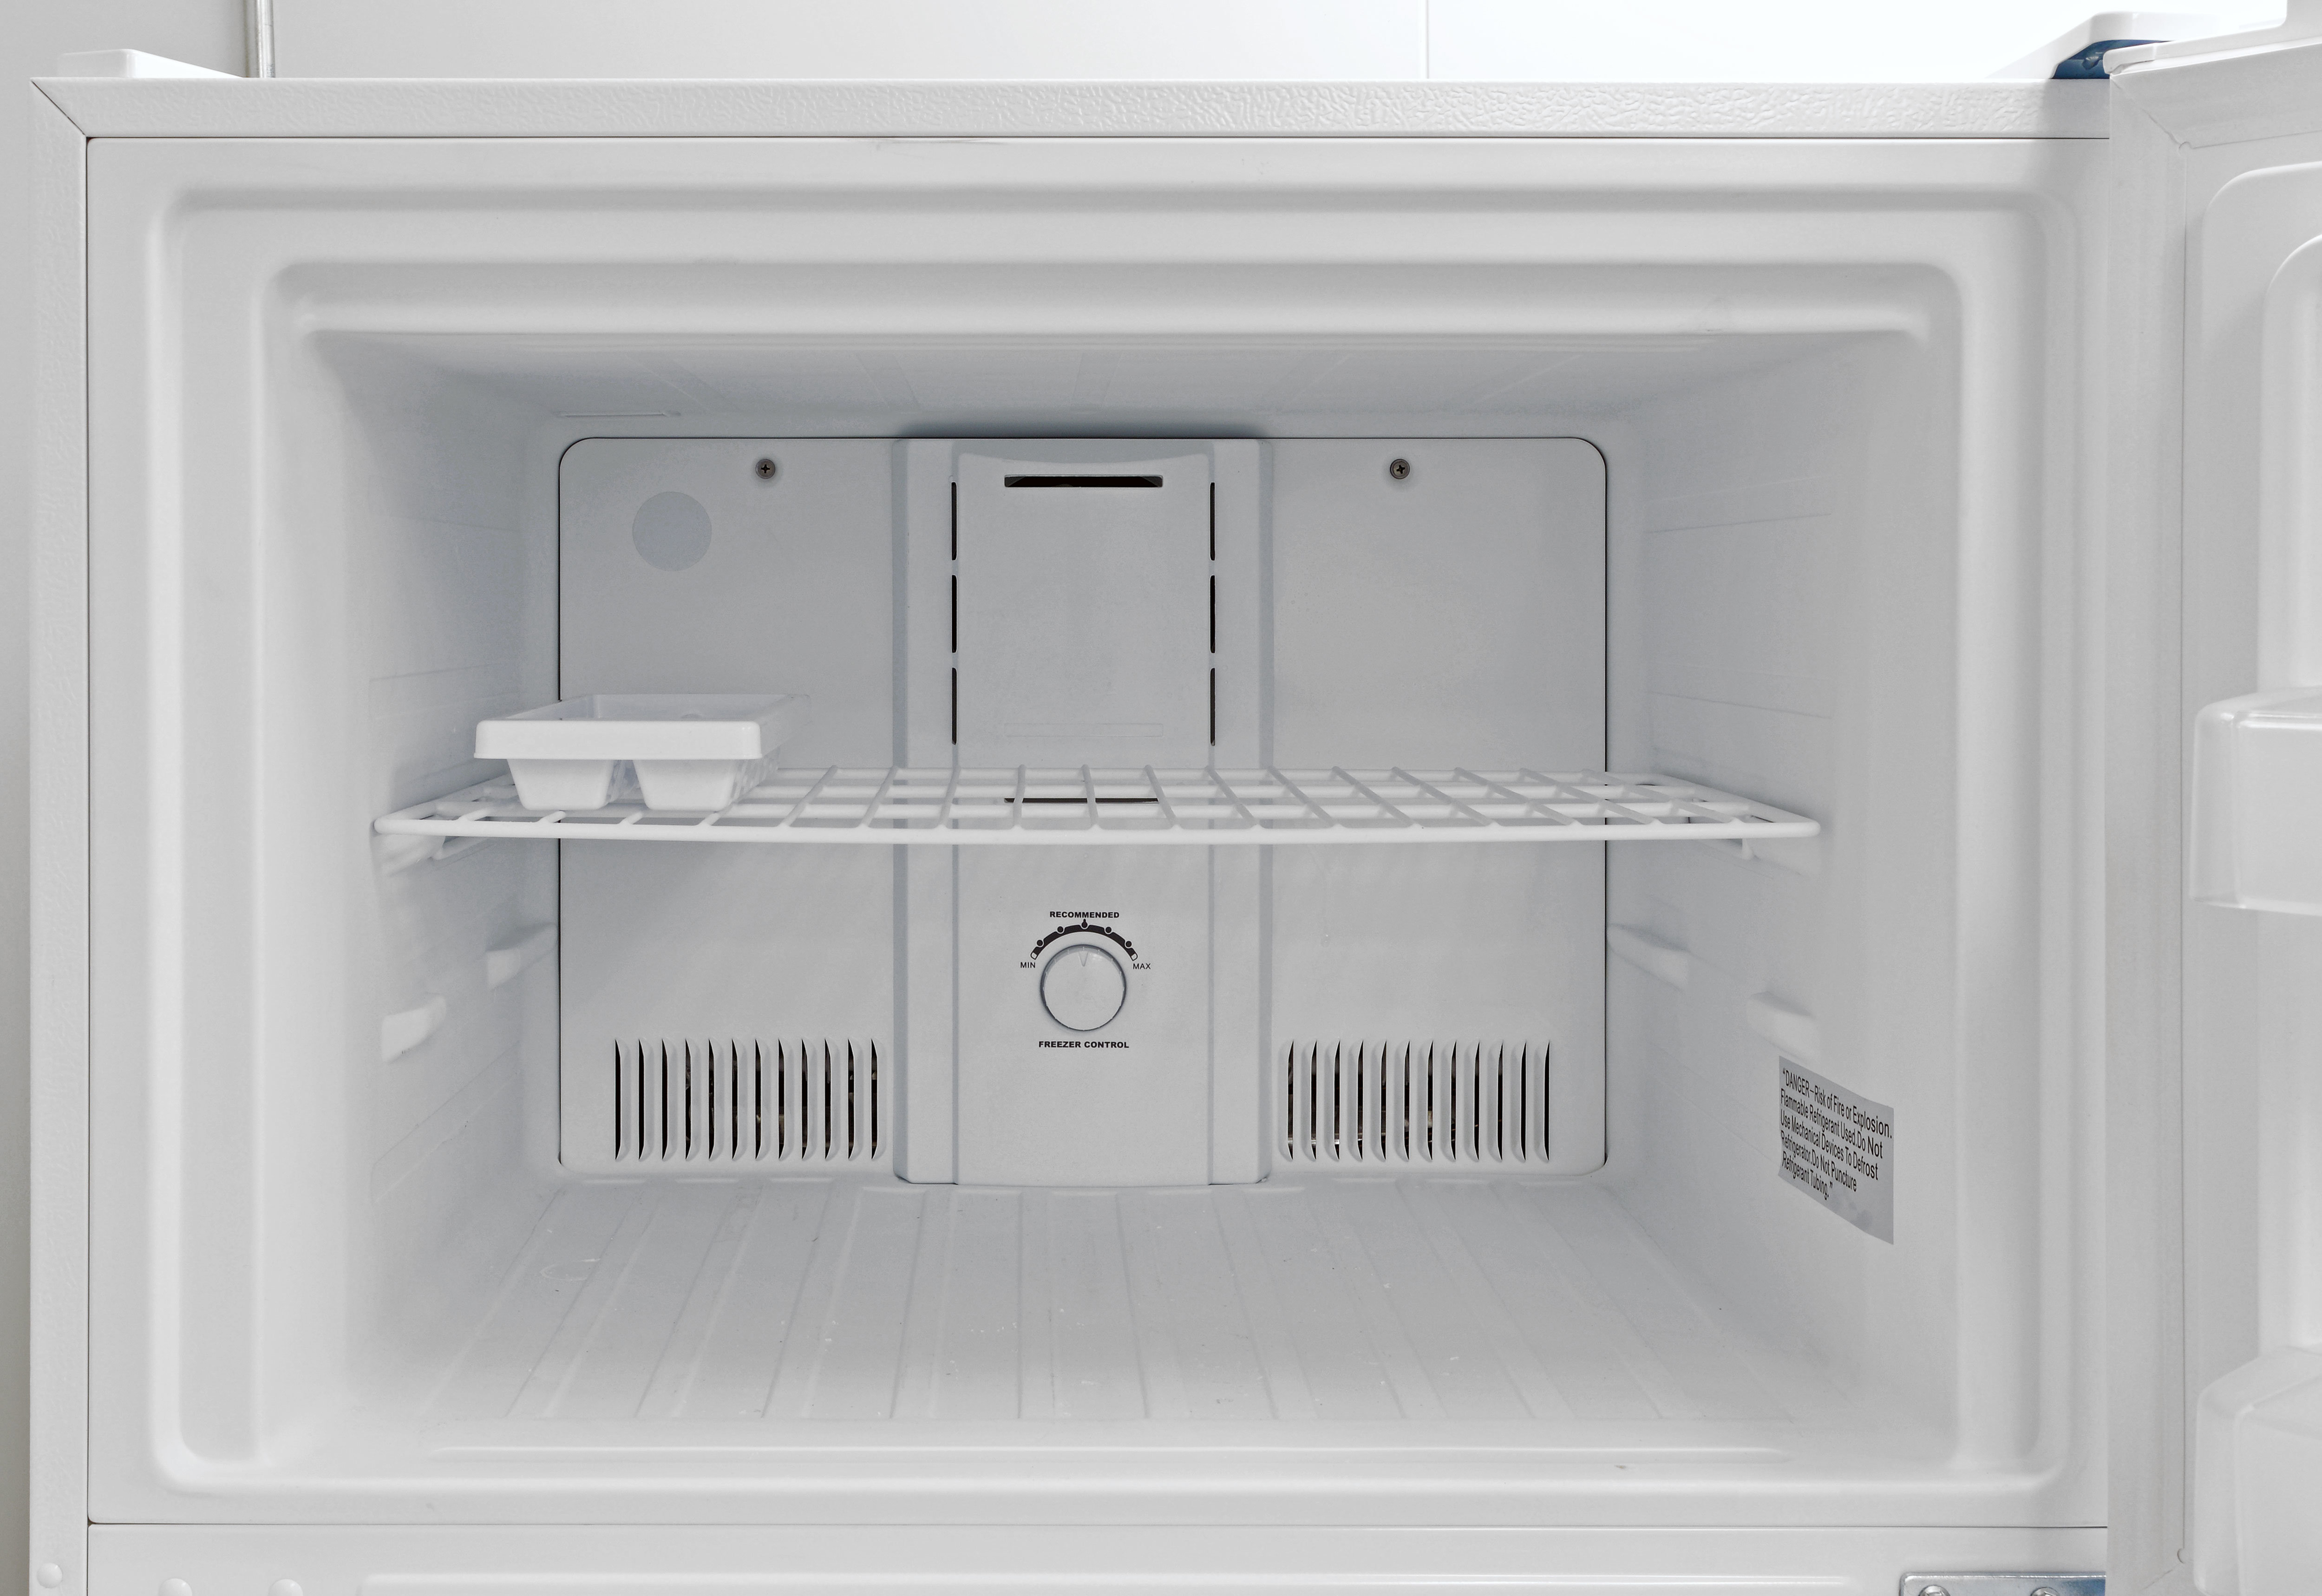 No light, no ice maker, just one adjustable wire shelf. Oh, and an ice cube tray.